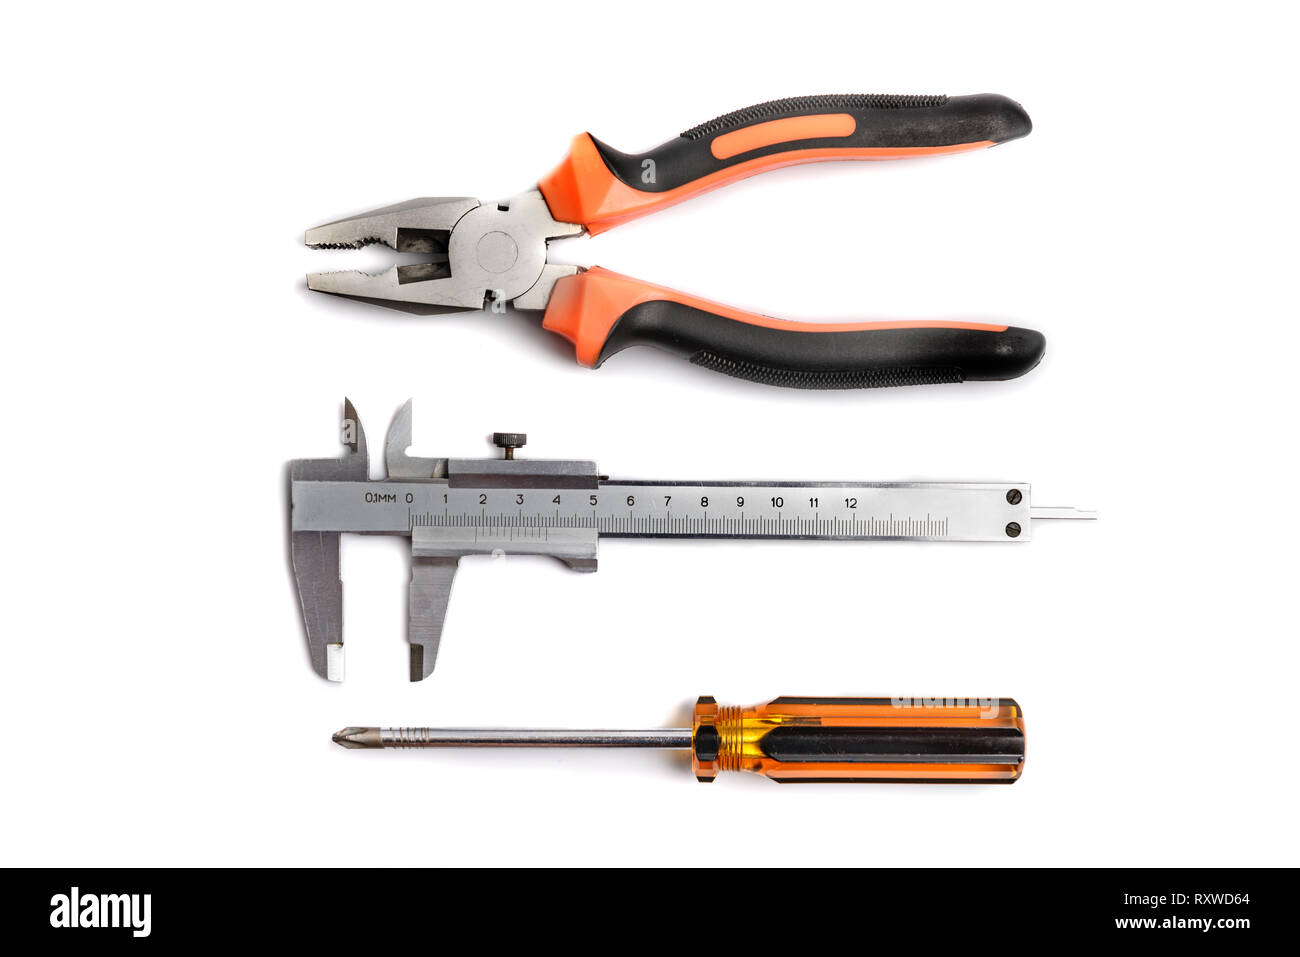 Calipers, pliers, screwdriver over white, tech support or repare concept - Stock Image